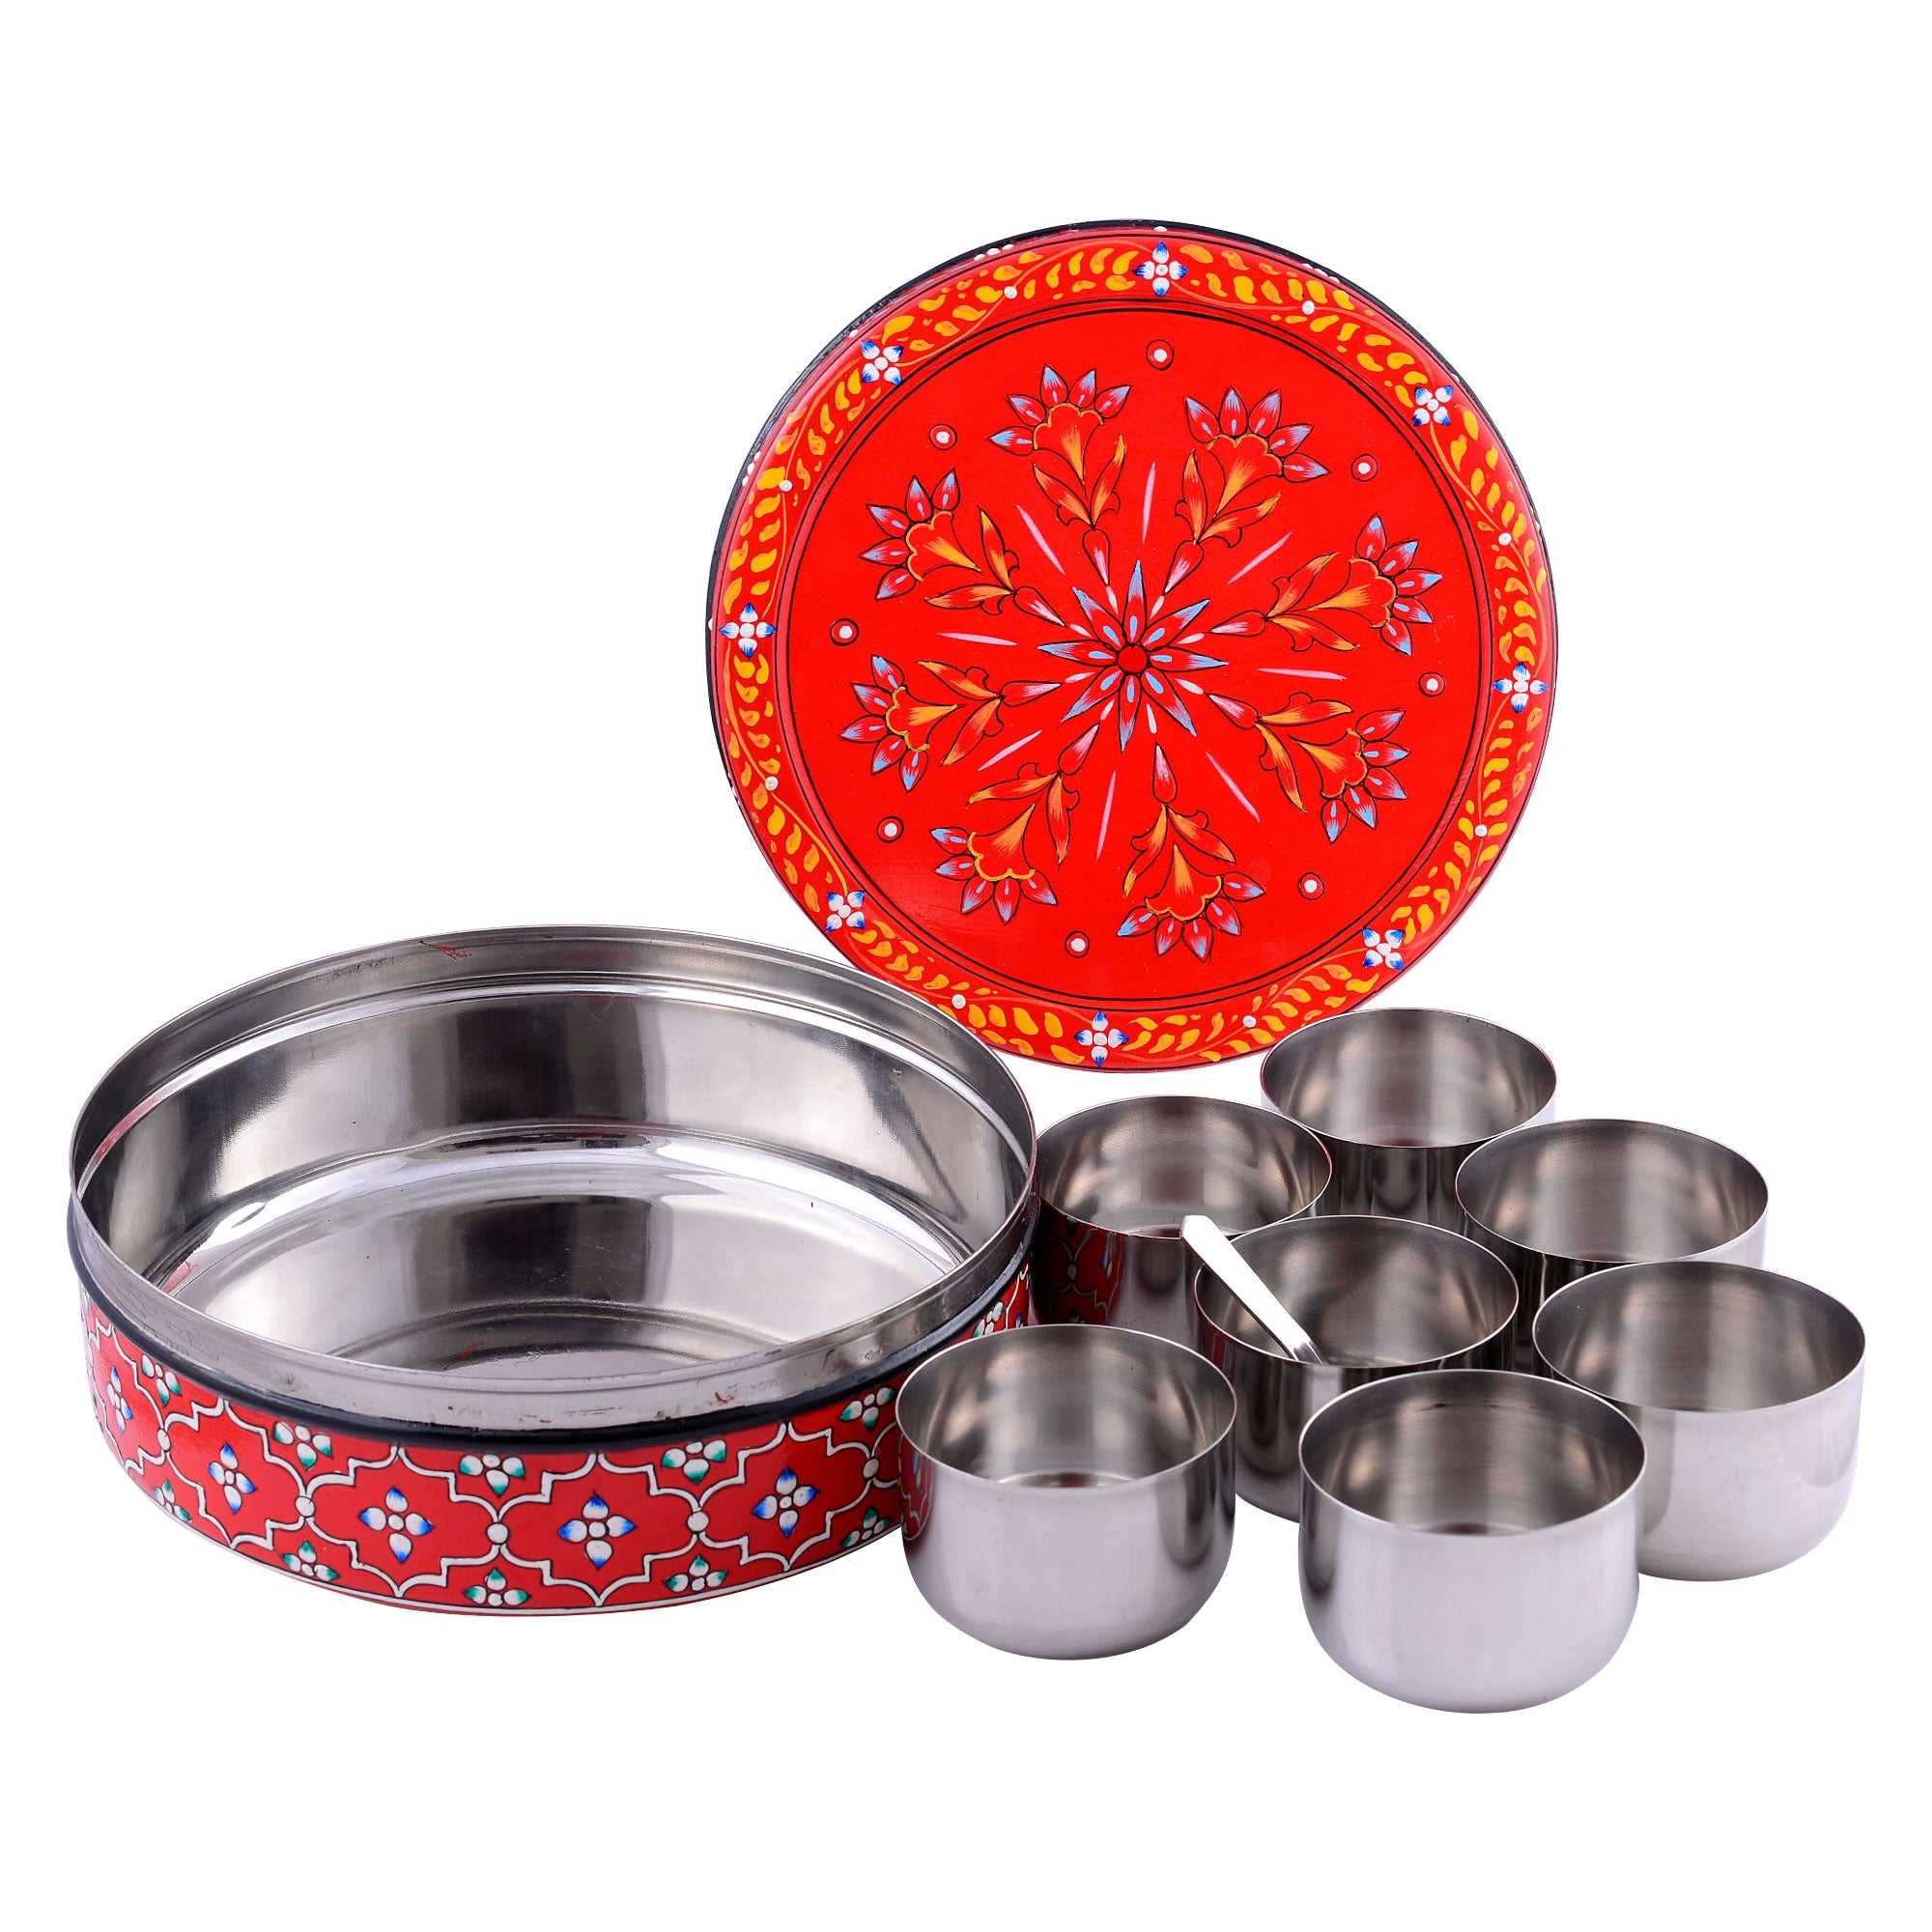 Kaushalam Hand Painted Spice Box - Masala Box, Spice Containers, Indian Masala daani